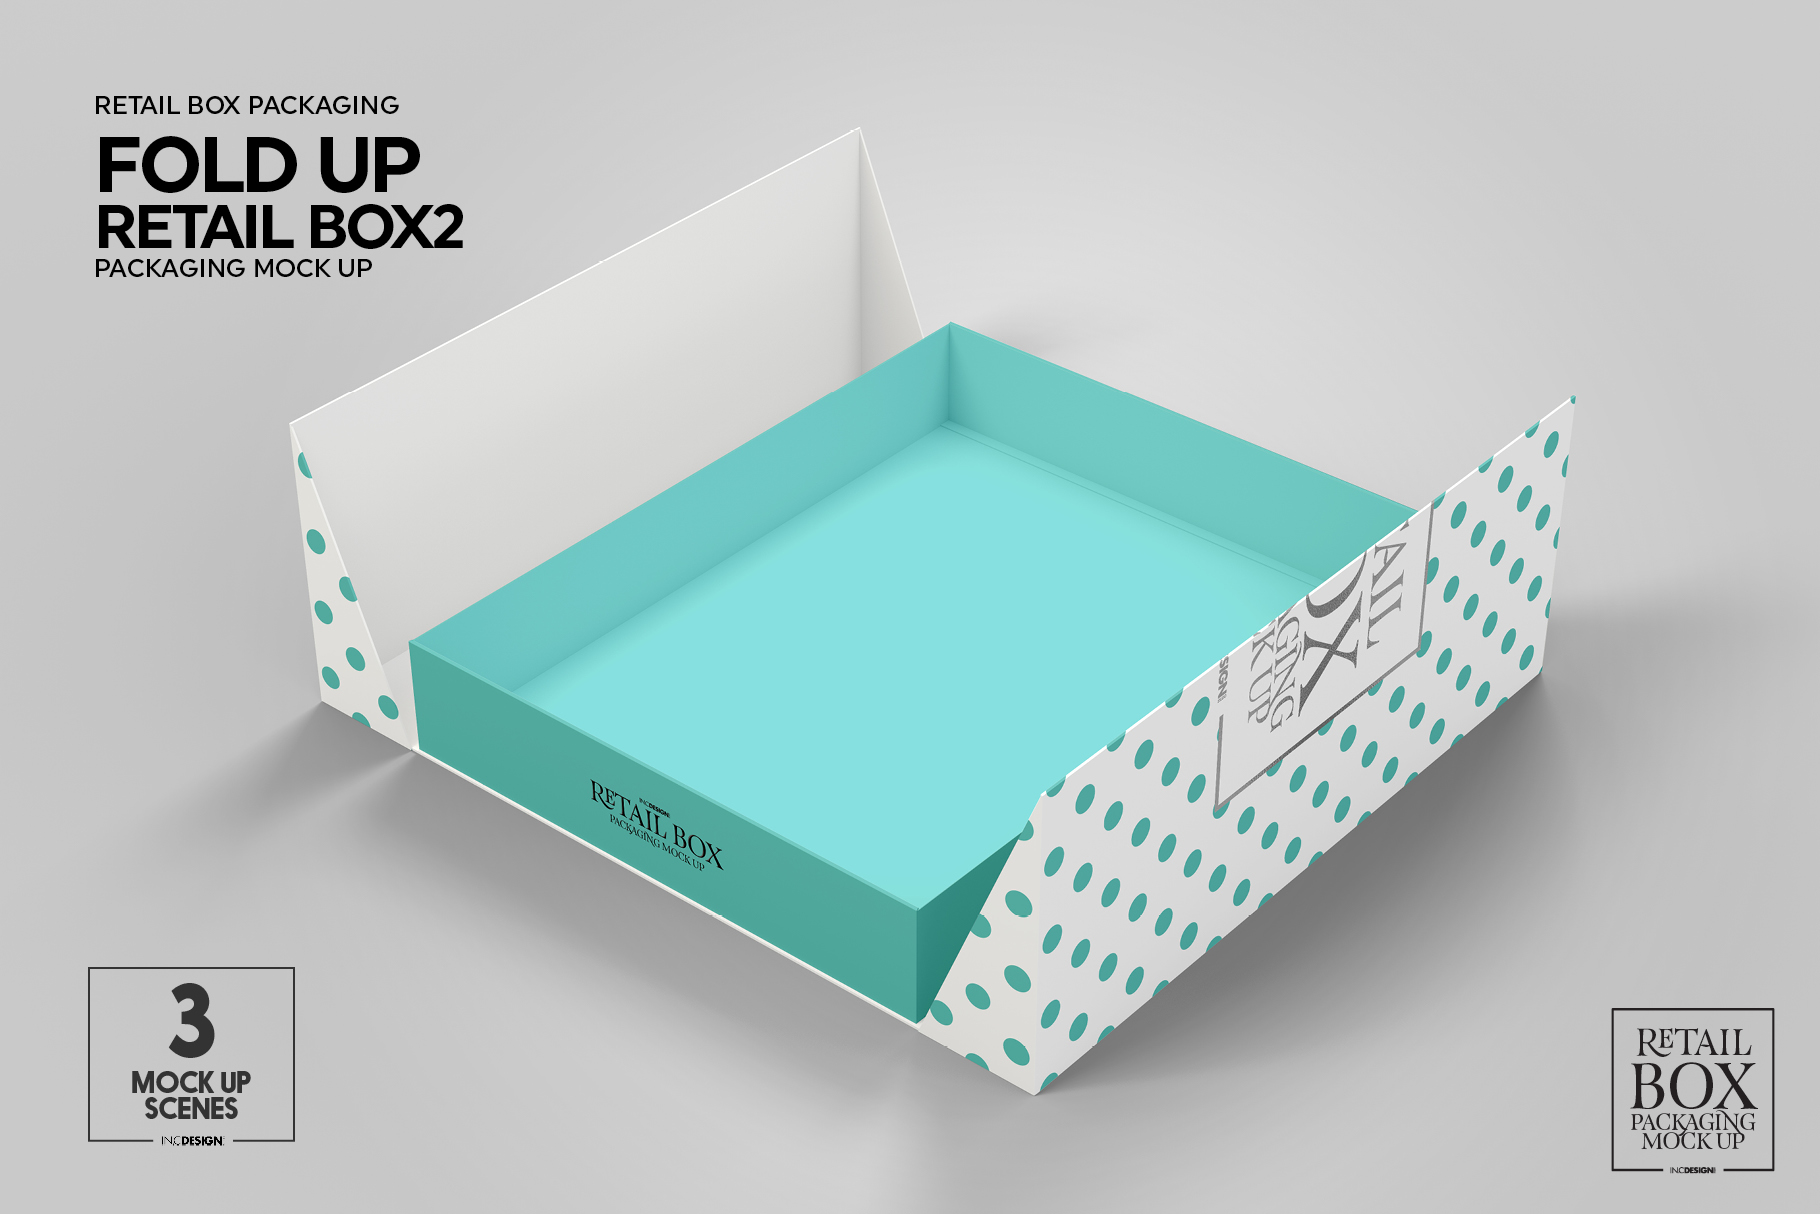 Fold Up Retail Thin Box Packaging Mockup example image 9